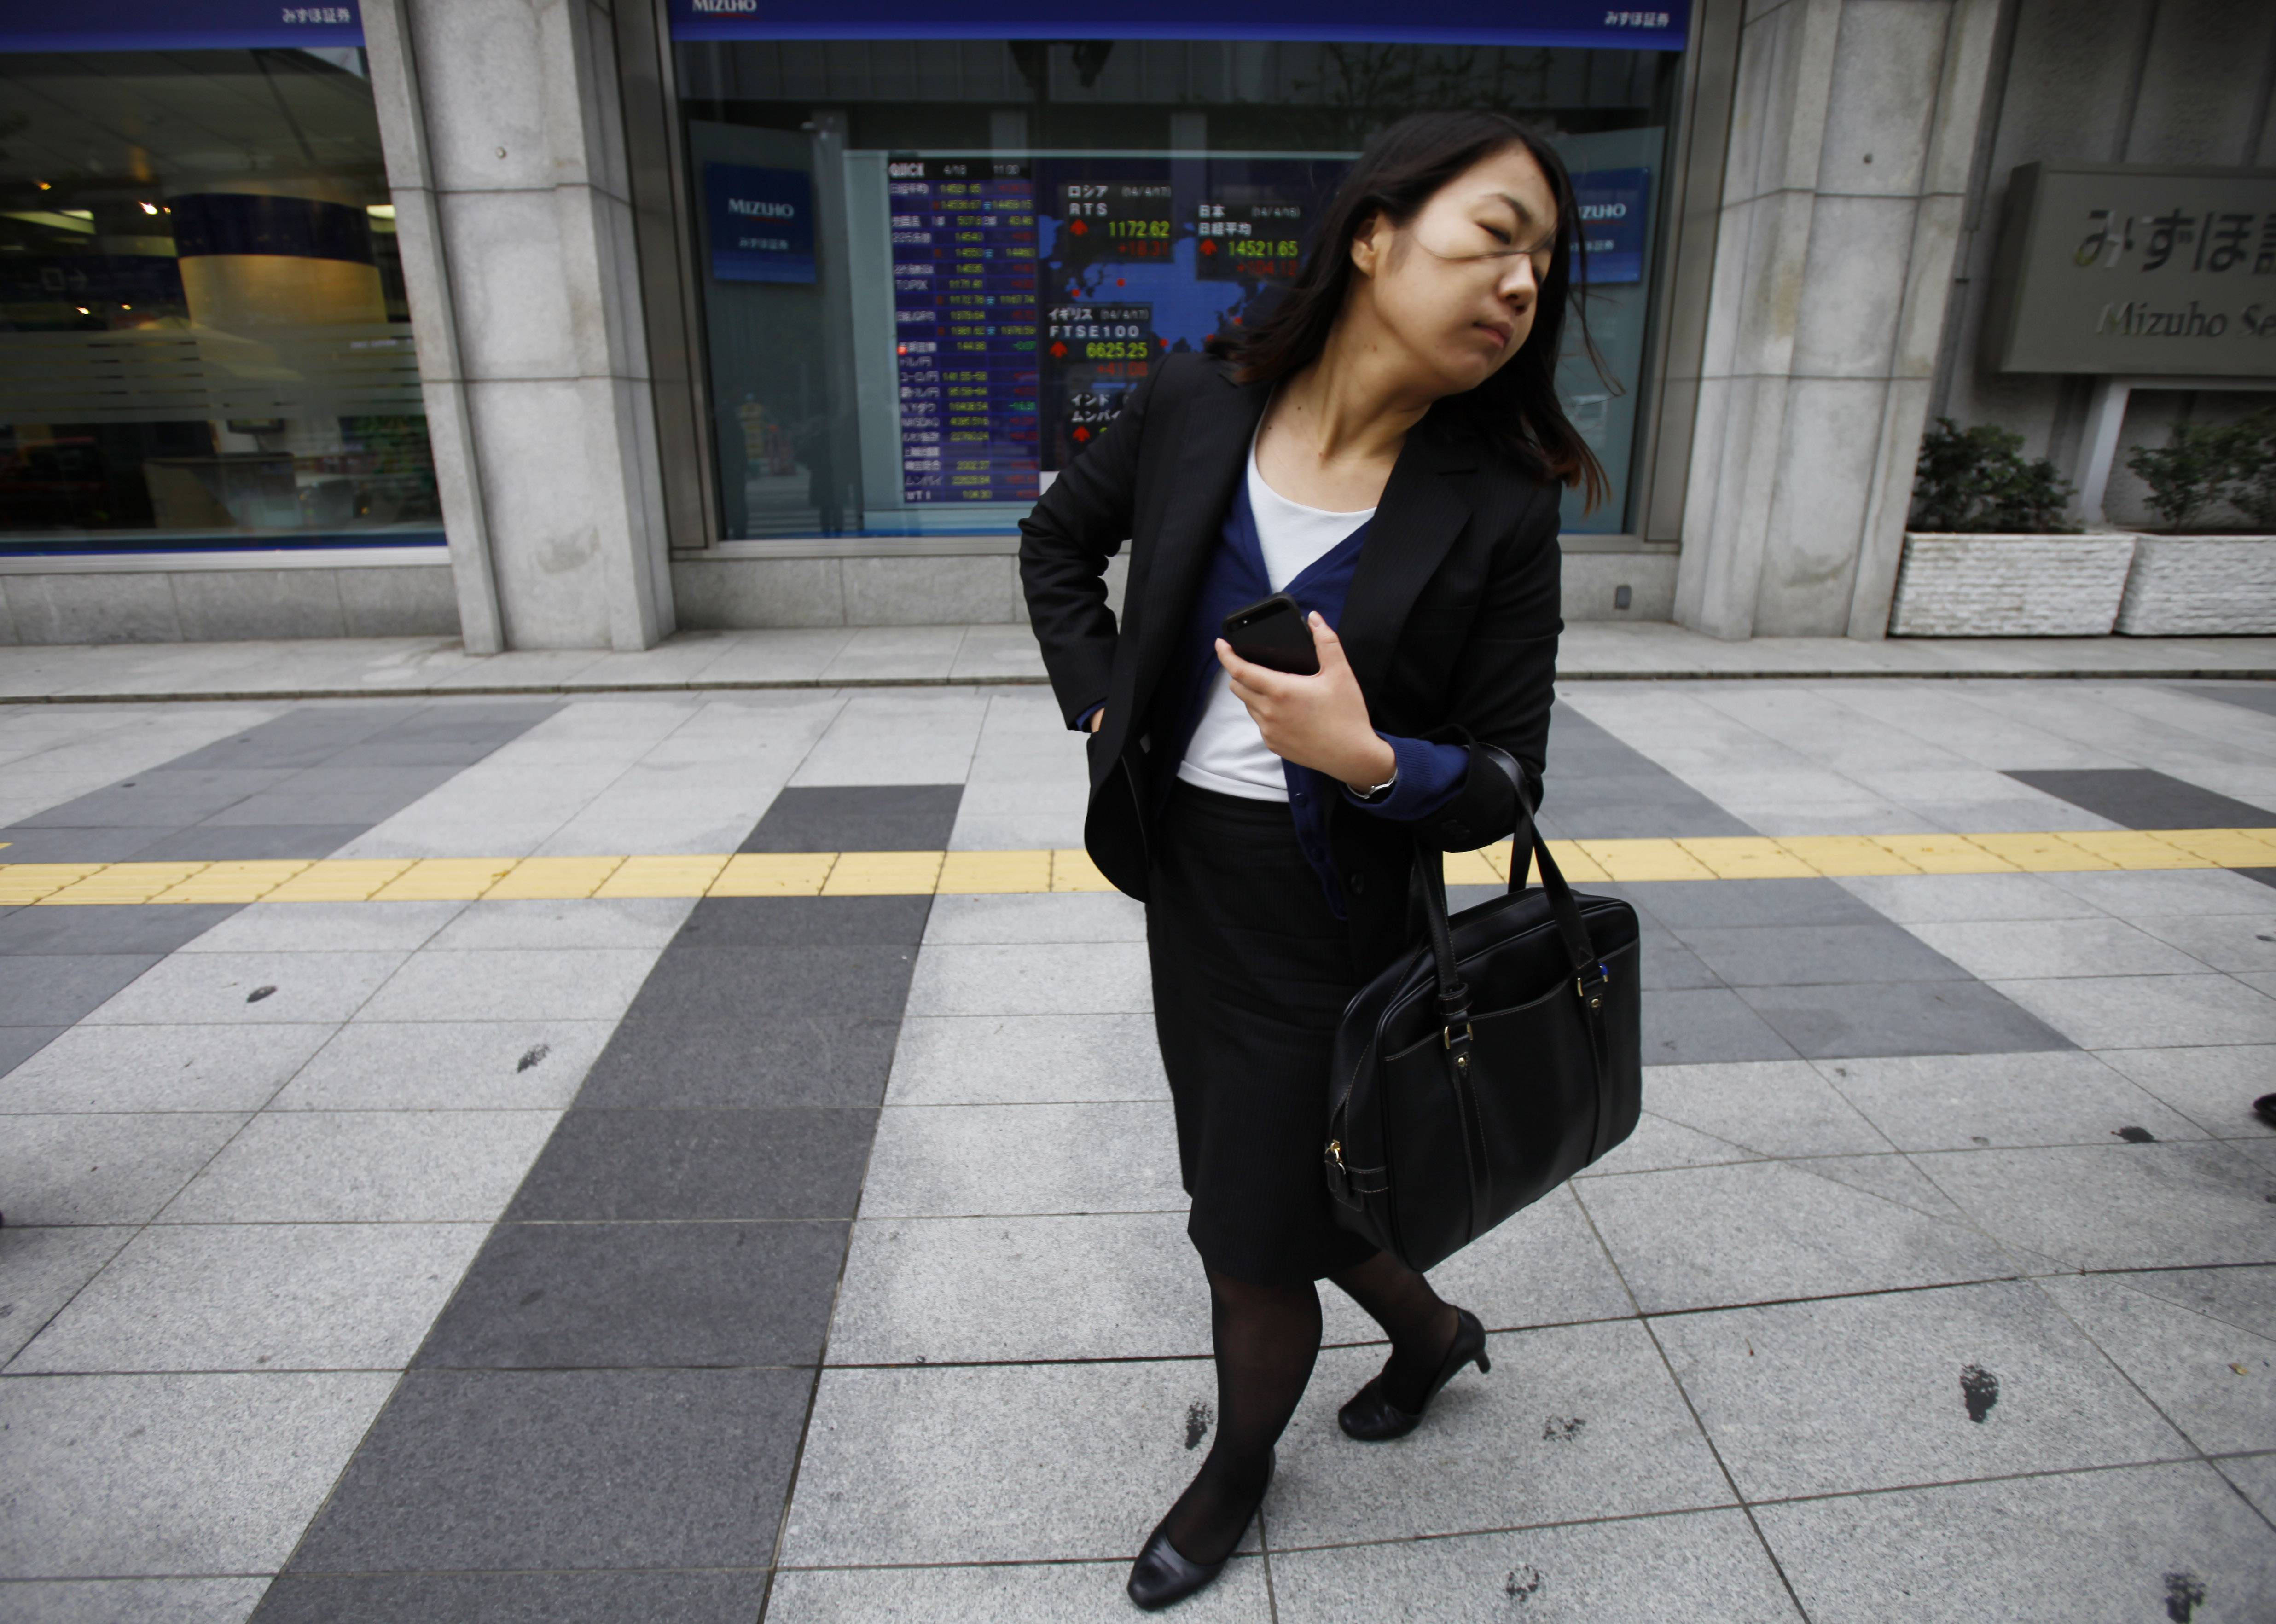 A woman walks Friday by an electric stock board outside a securities firm in Tokyo. Asian stocks were mostly higher Friday after mixed U.S. earnings reports with most of the region's exchanges closed for Good Friday. Tokyo's Nikkei 225 gained 0.6 percent to 14,504.47.